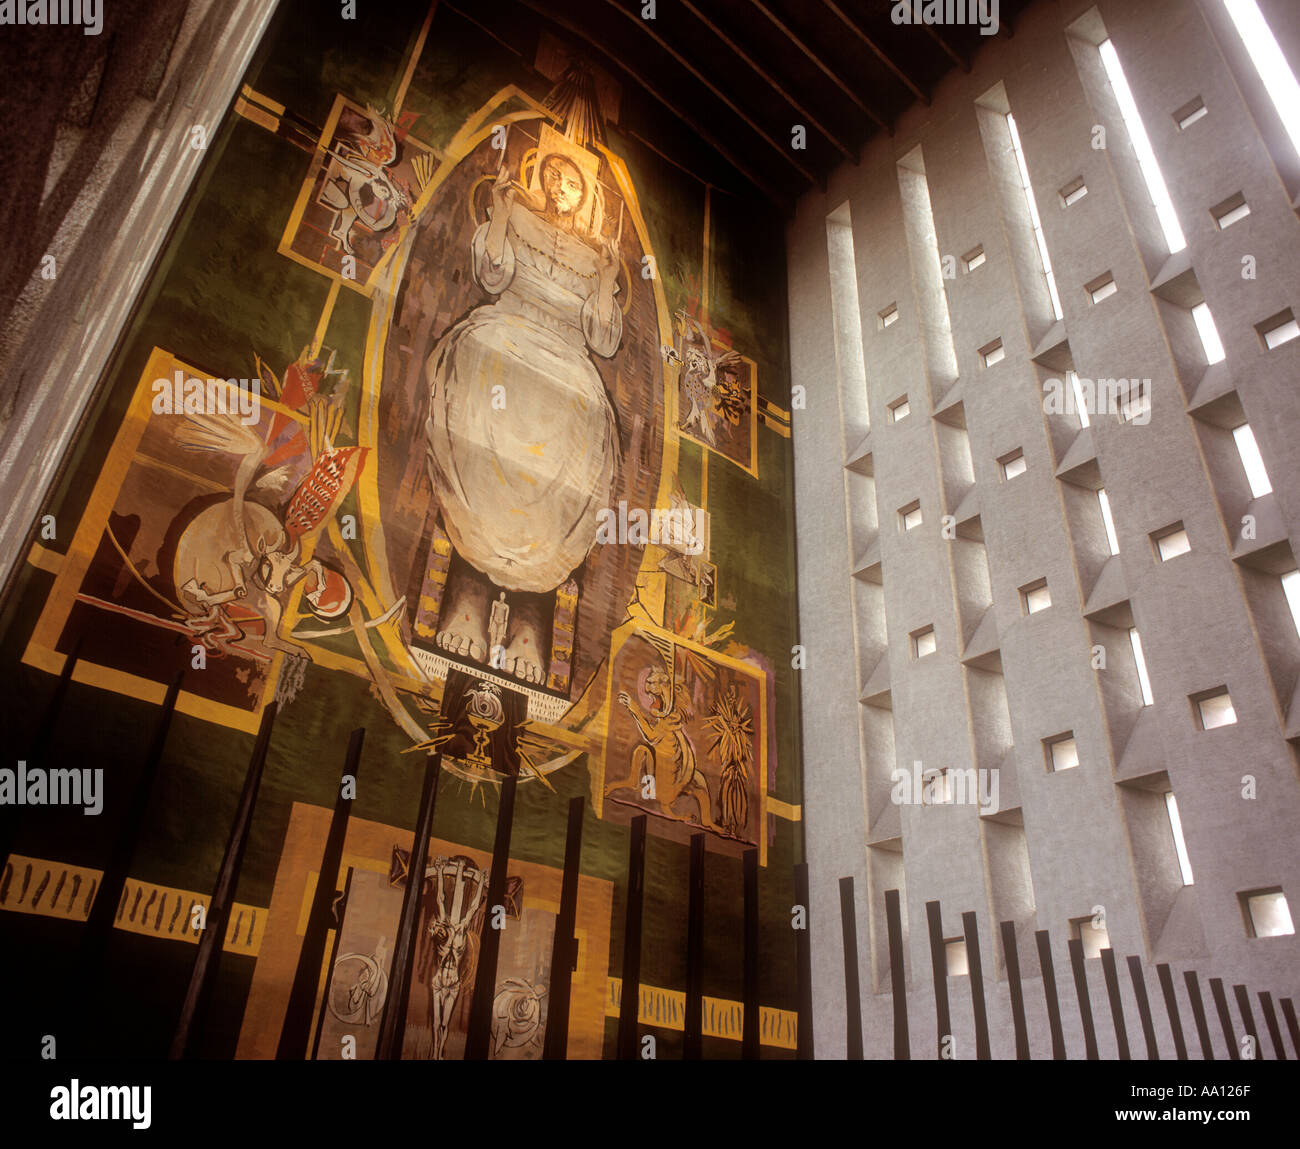 Interior of Coventry Cathedral Coventry England UK - Stock Image